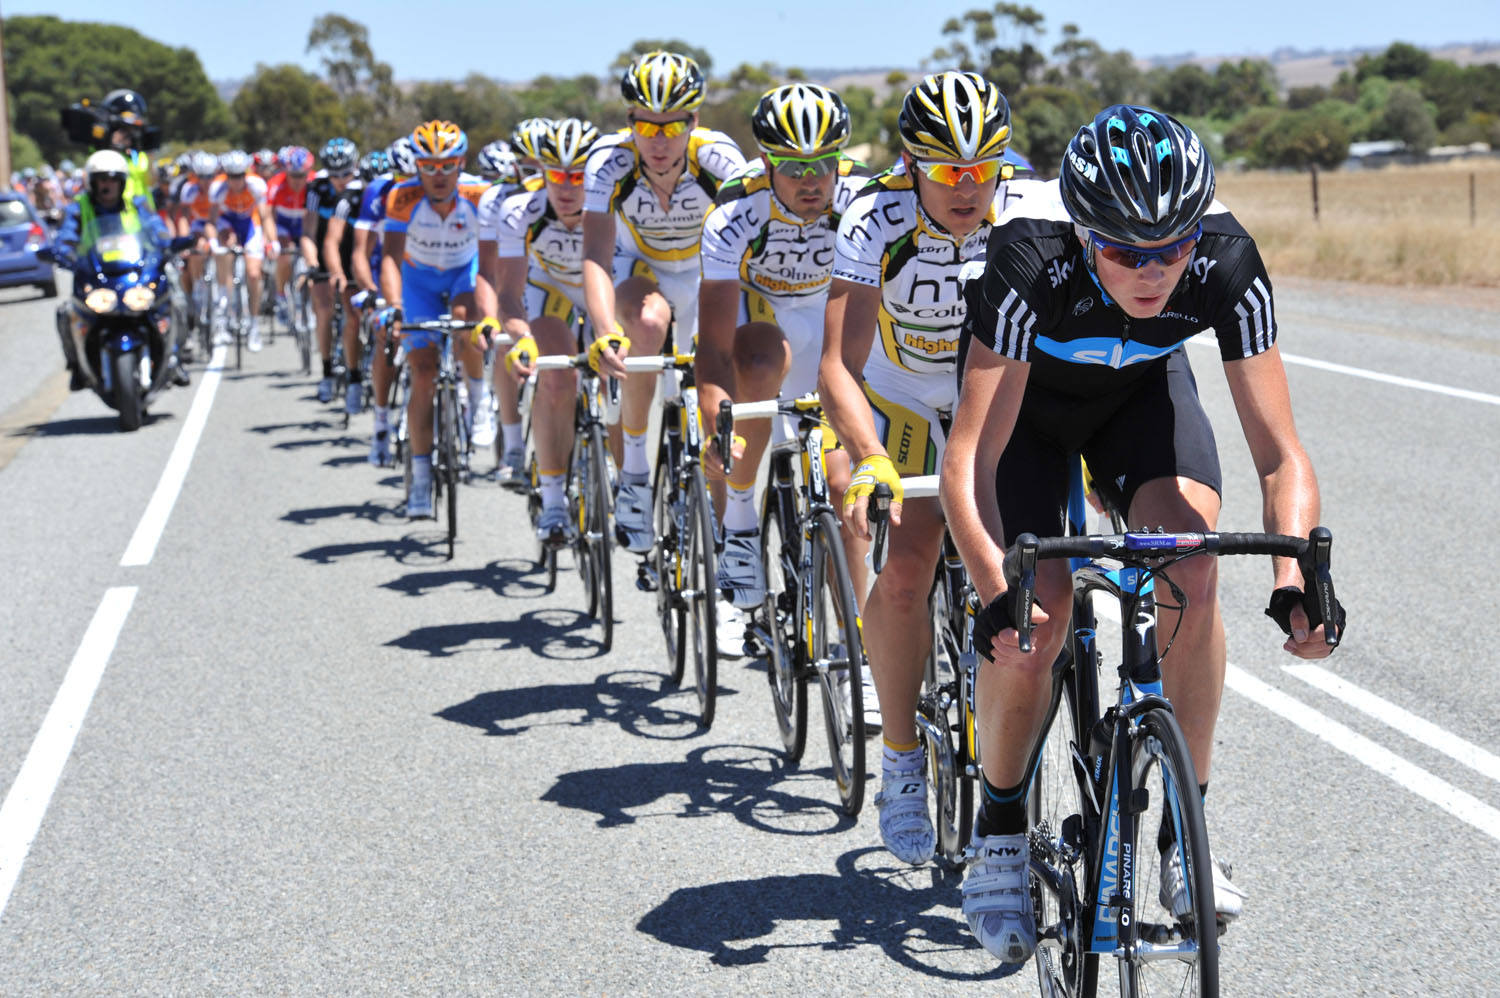 tour down under, tdu, stage one, 2010, andre greipel, htc columbia, team sky, greg henderson, lance armstrong, australia, protour, adelaide, cycling, cycle racing